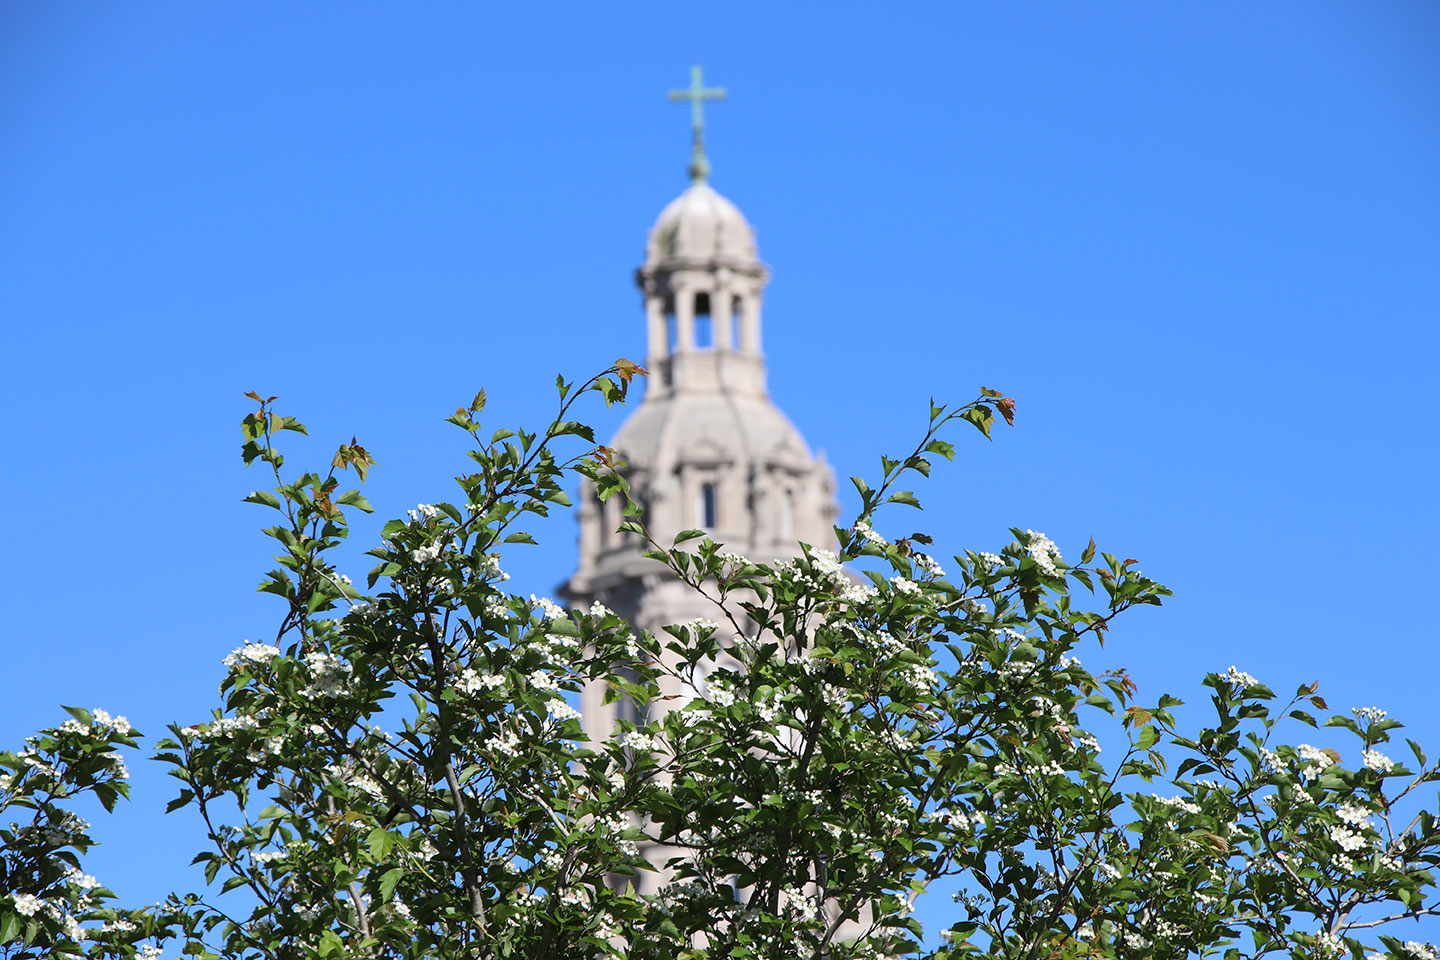 Top of a tree with the Church of Immaculate Conception in the back